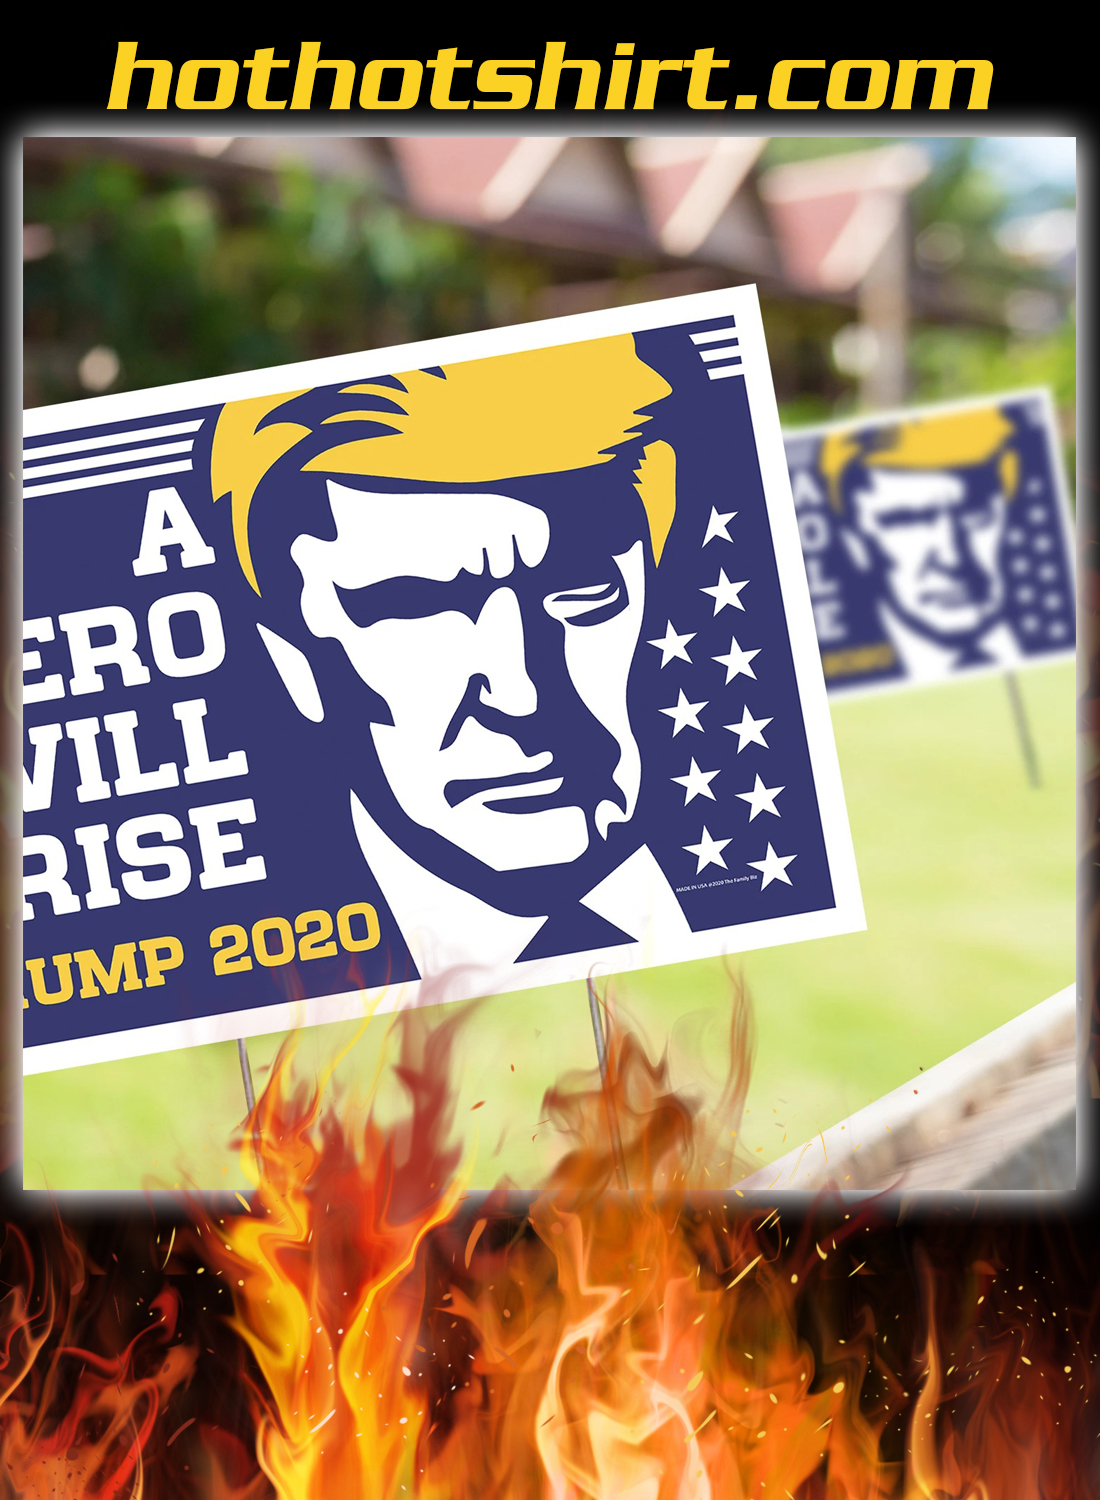 A hero will rise trump 2020 yard signs 2